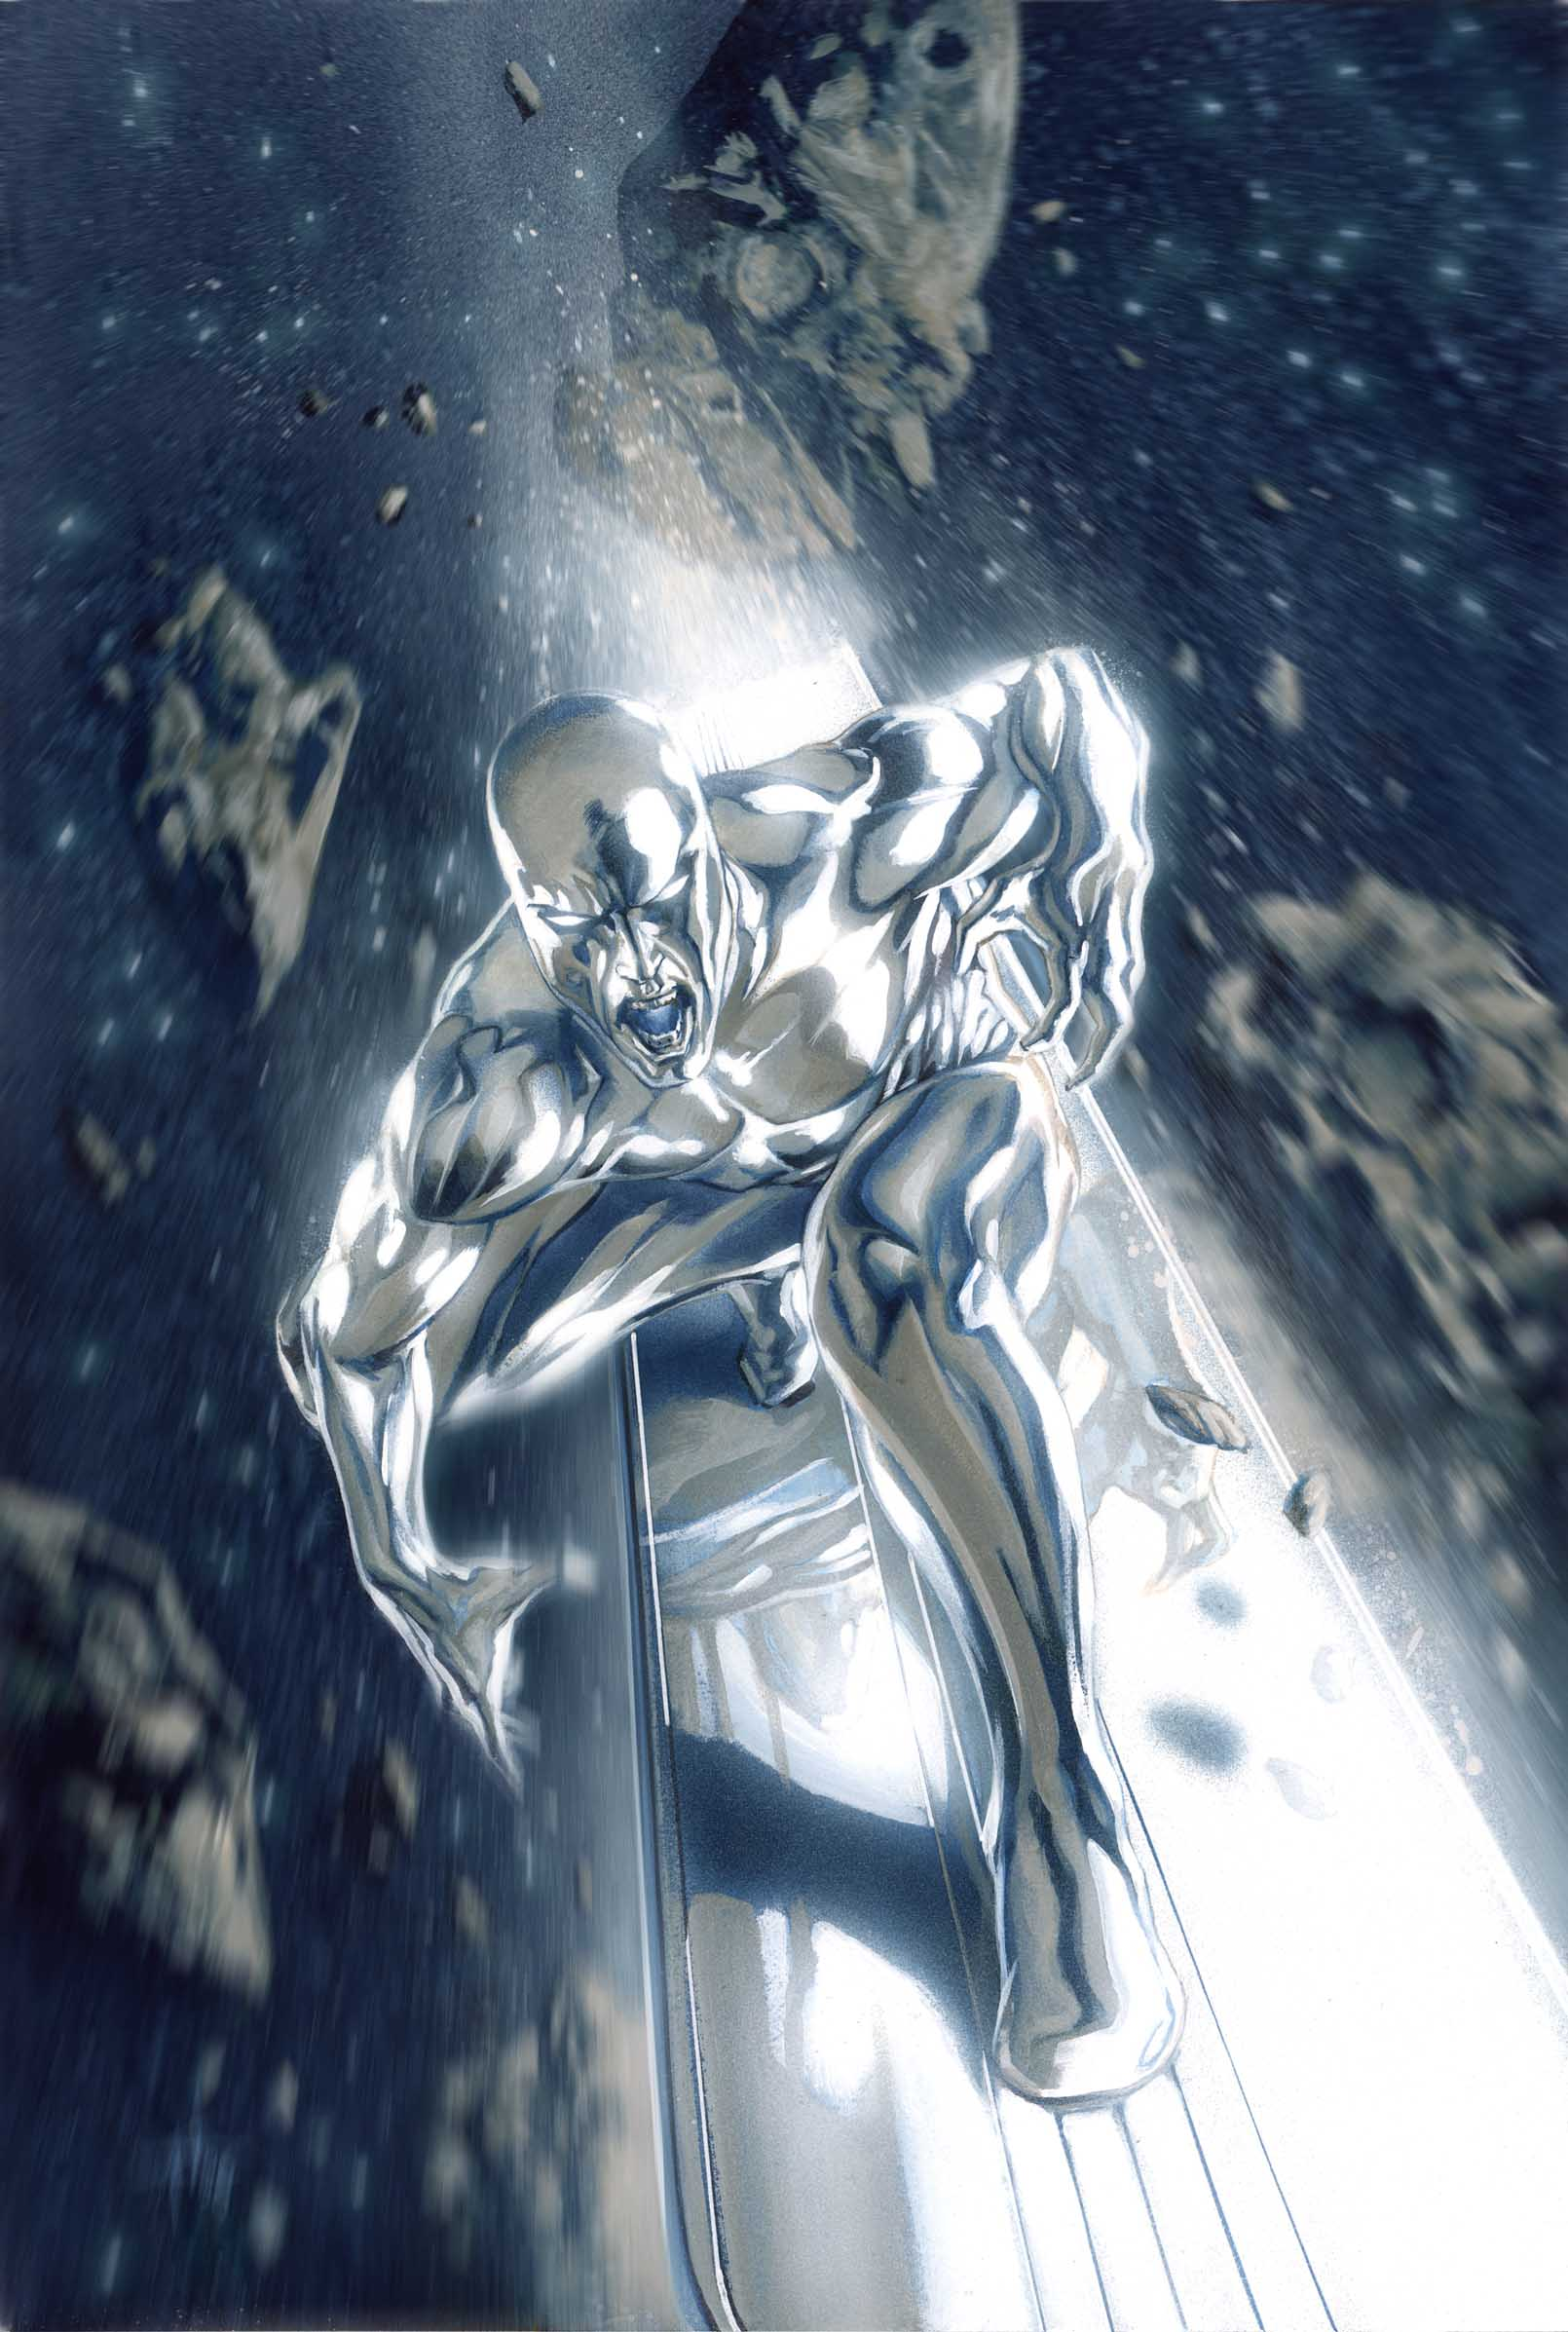 The Silver Surfer Marvel comics super hero